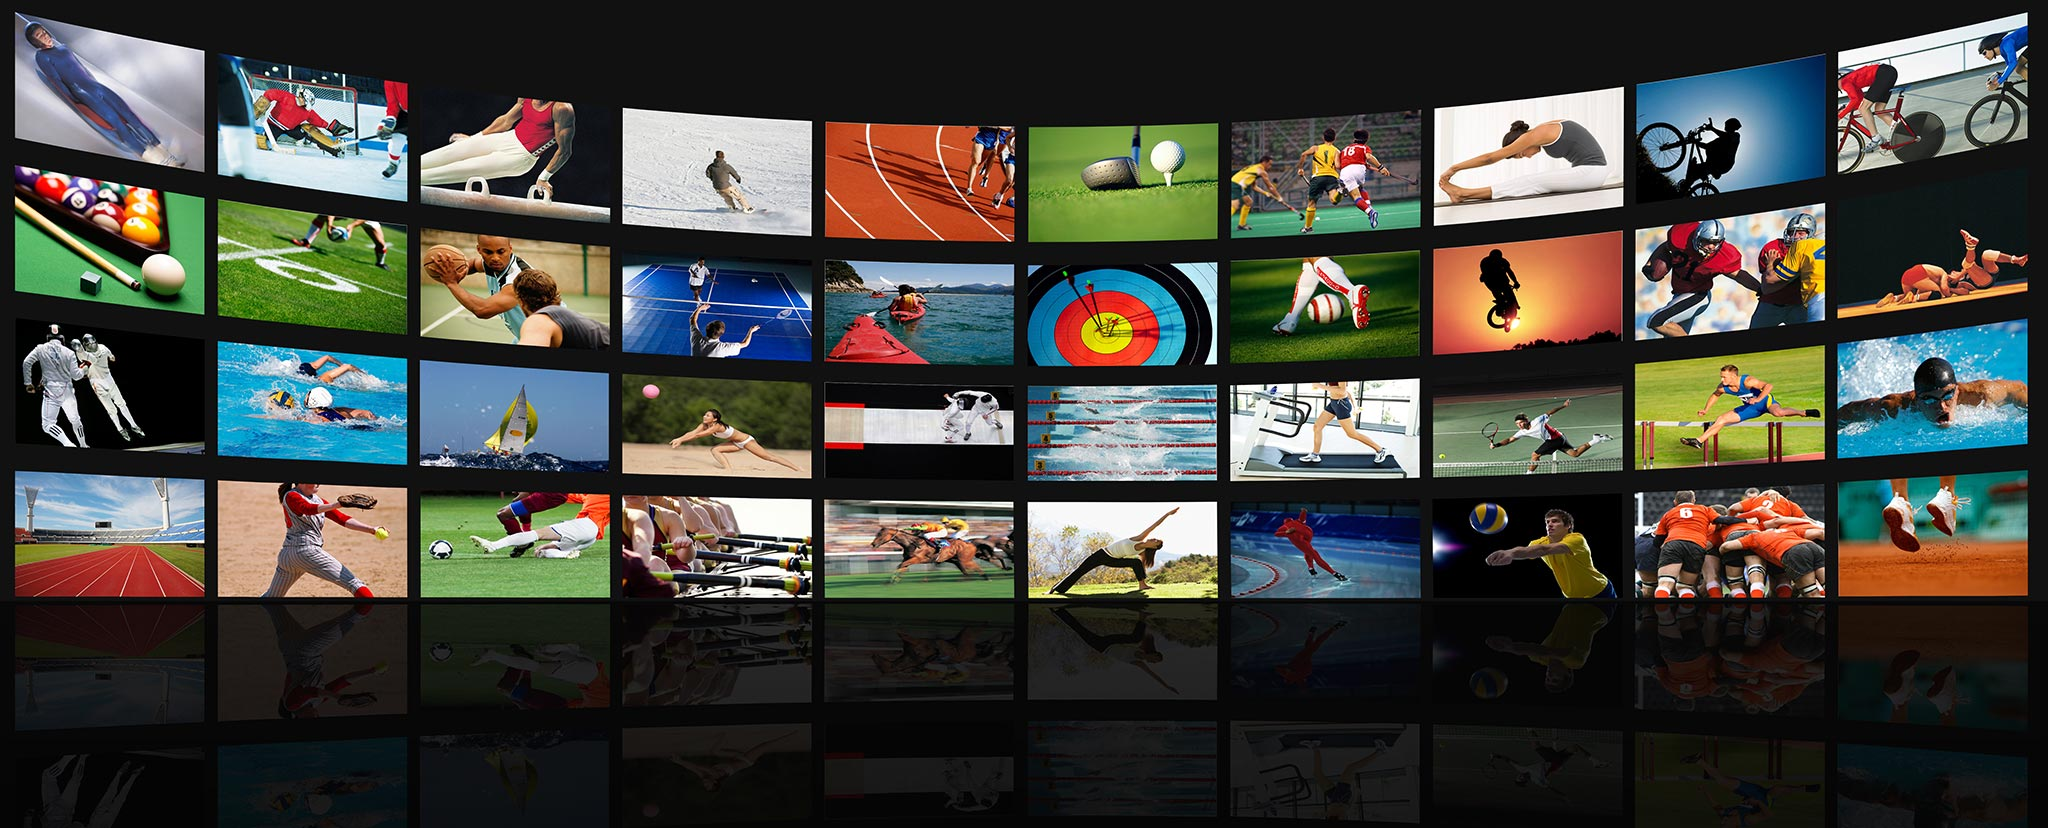 about tv Check out our fun tv facts for kids find interesting information about television that will help you understand how the technology works in an easy to understand way.